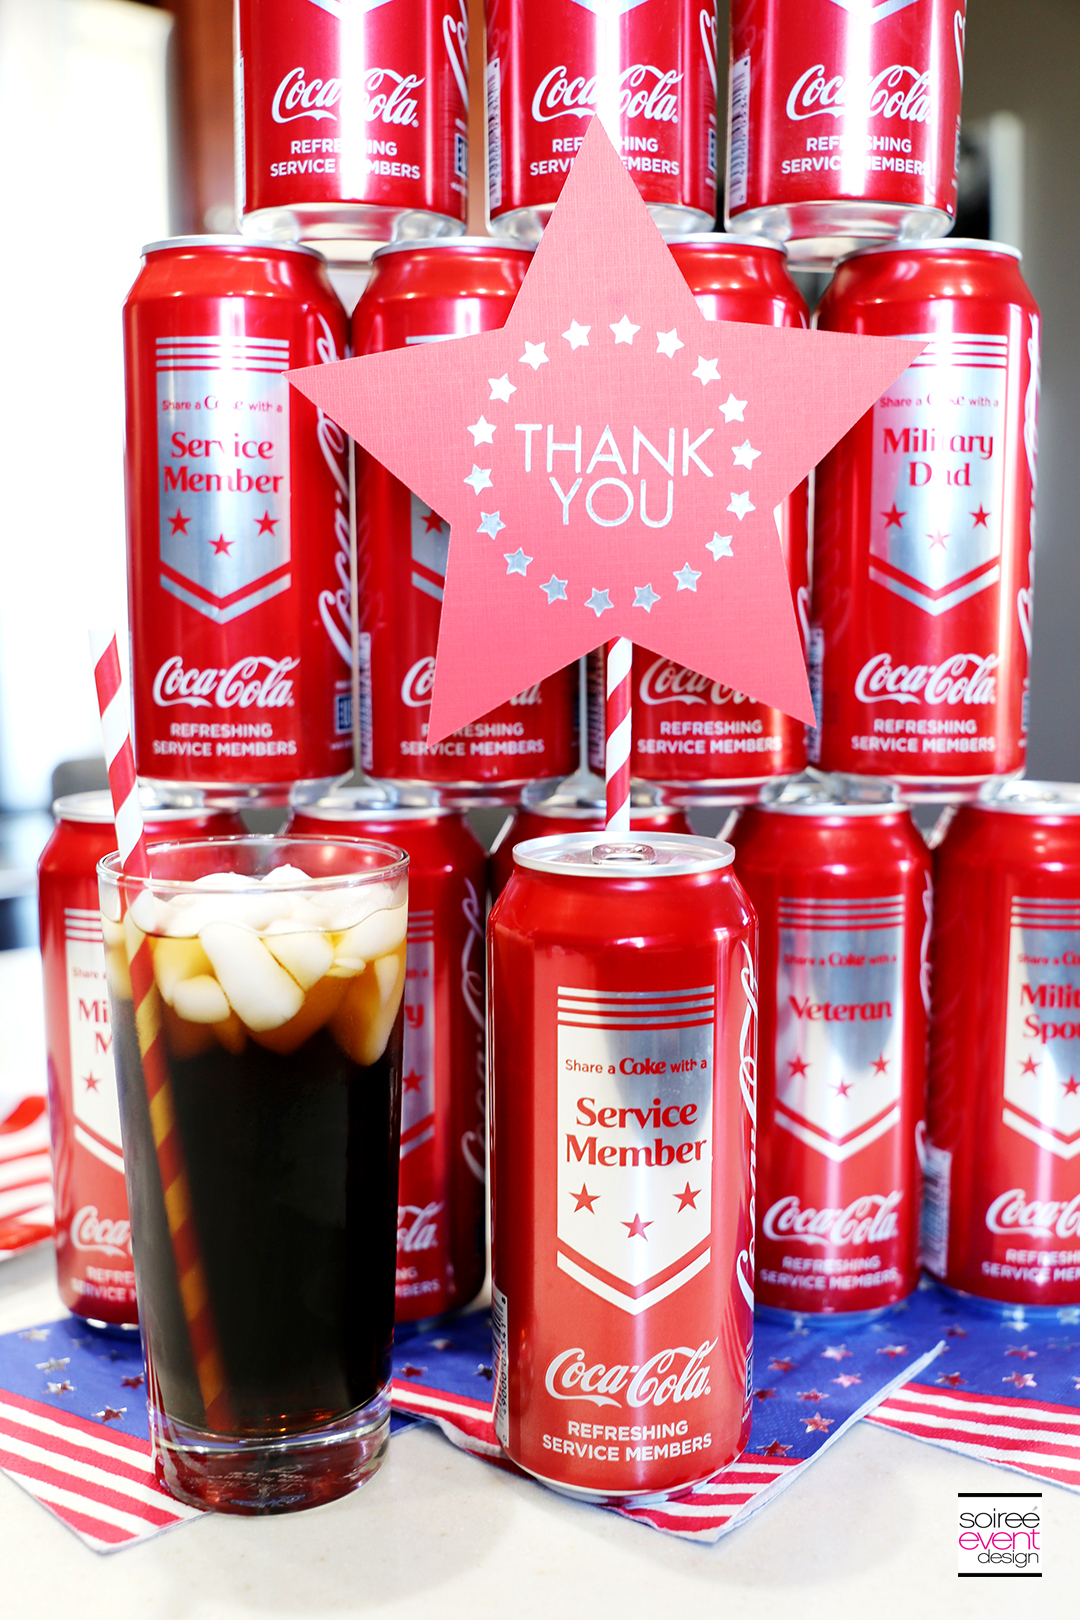 Coca-Cola limited edition MIlitary Cans at Dollar General